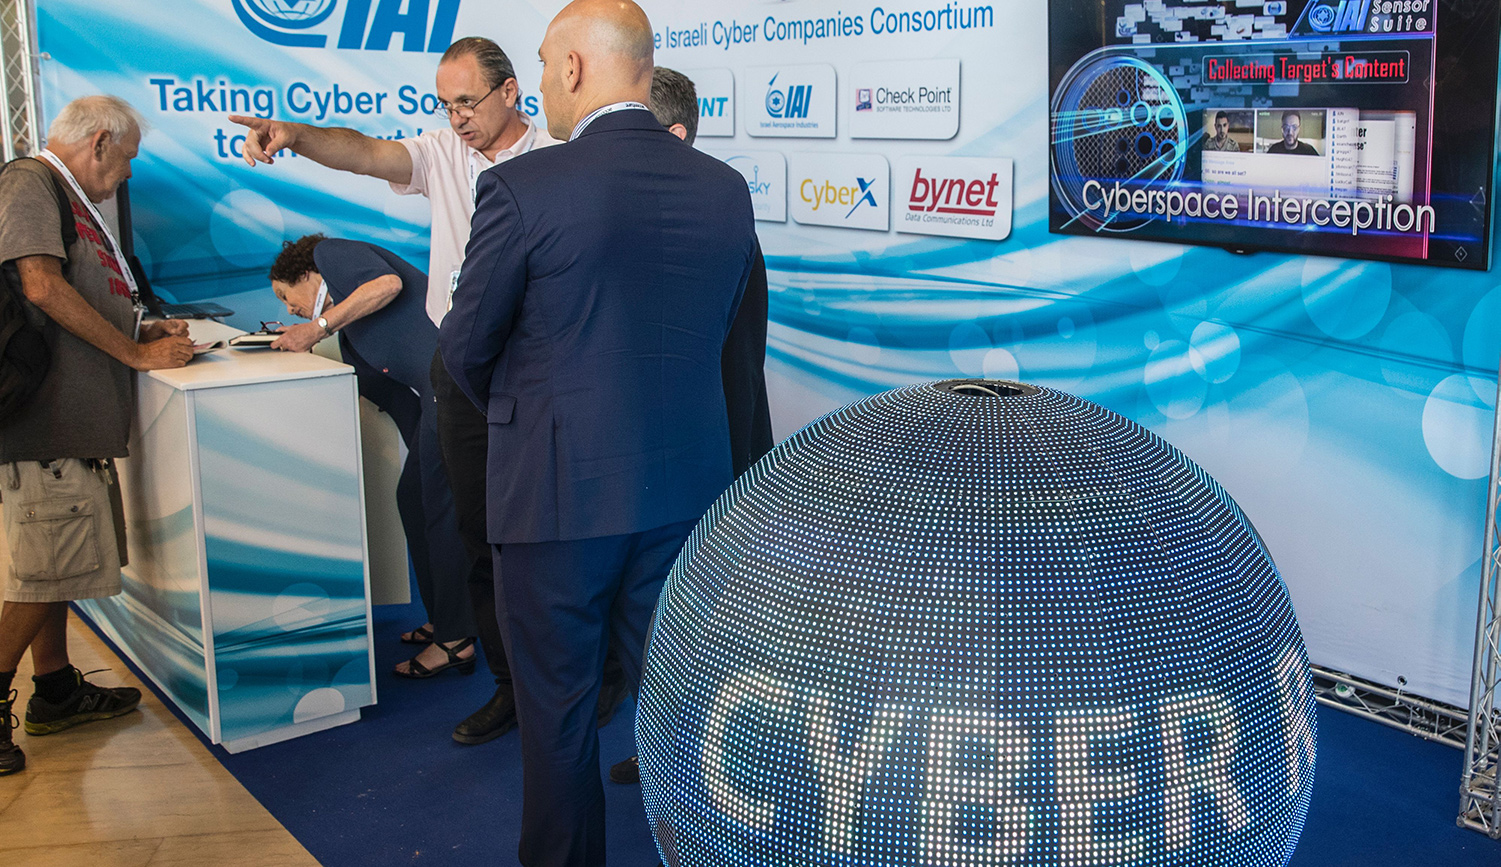 The 6th Annual International Cybersecurity Conference at Tel Aviv University on June 20, 2016. JACK GUEZ/AFP/Getty Images.